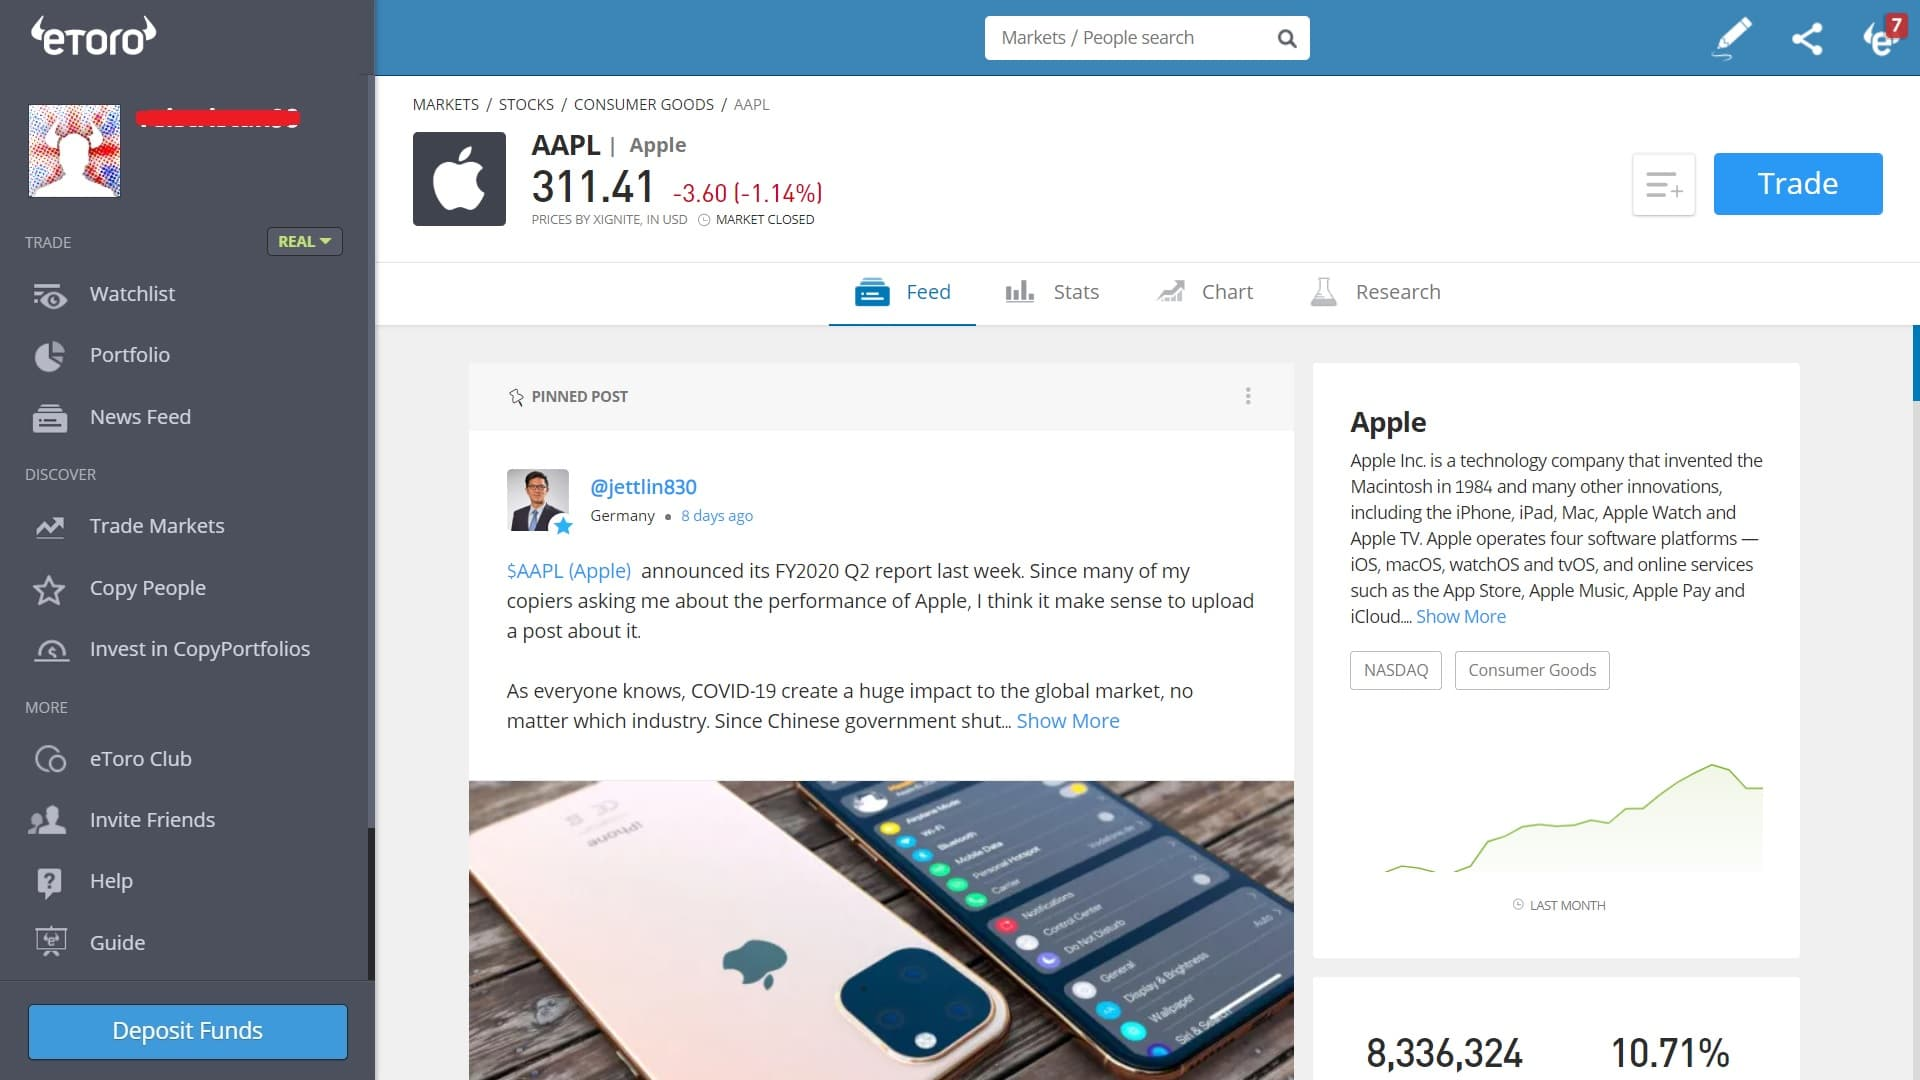 Apple stock trading on eToro's platform